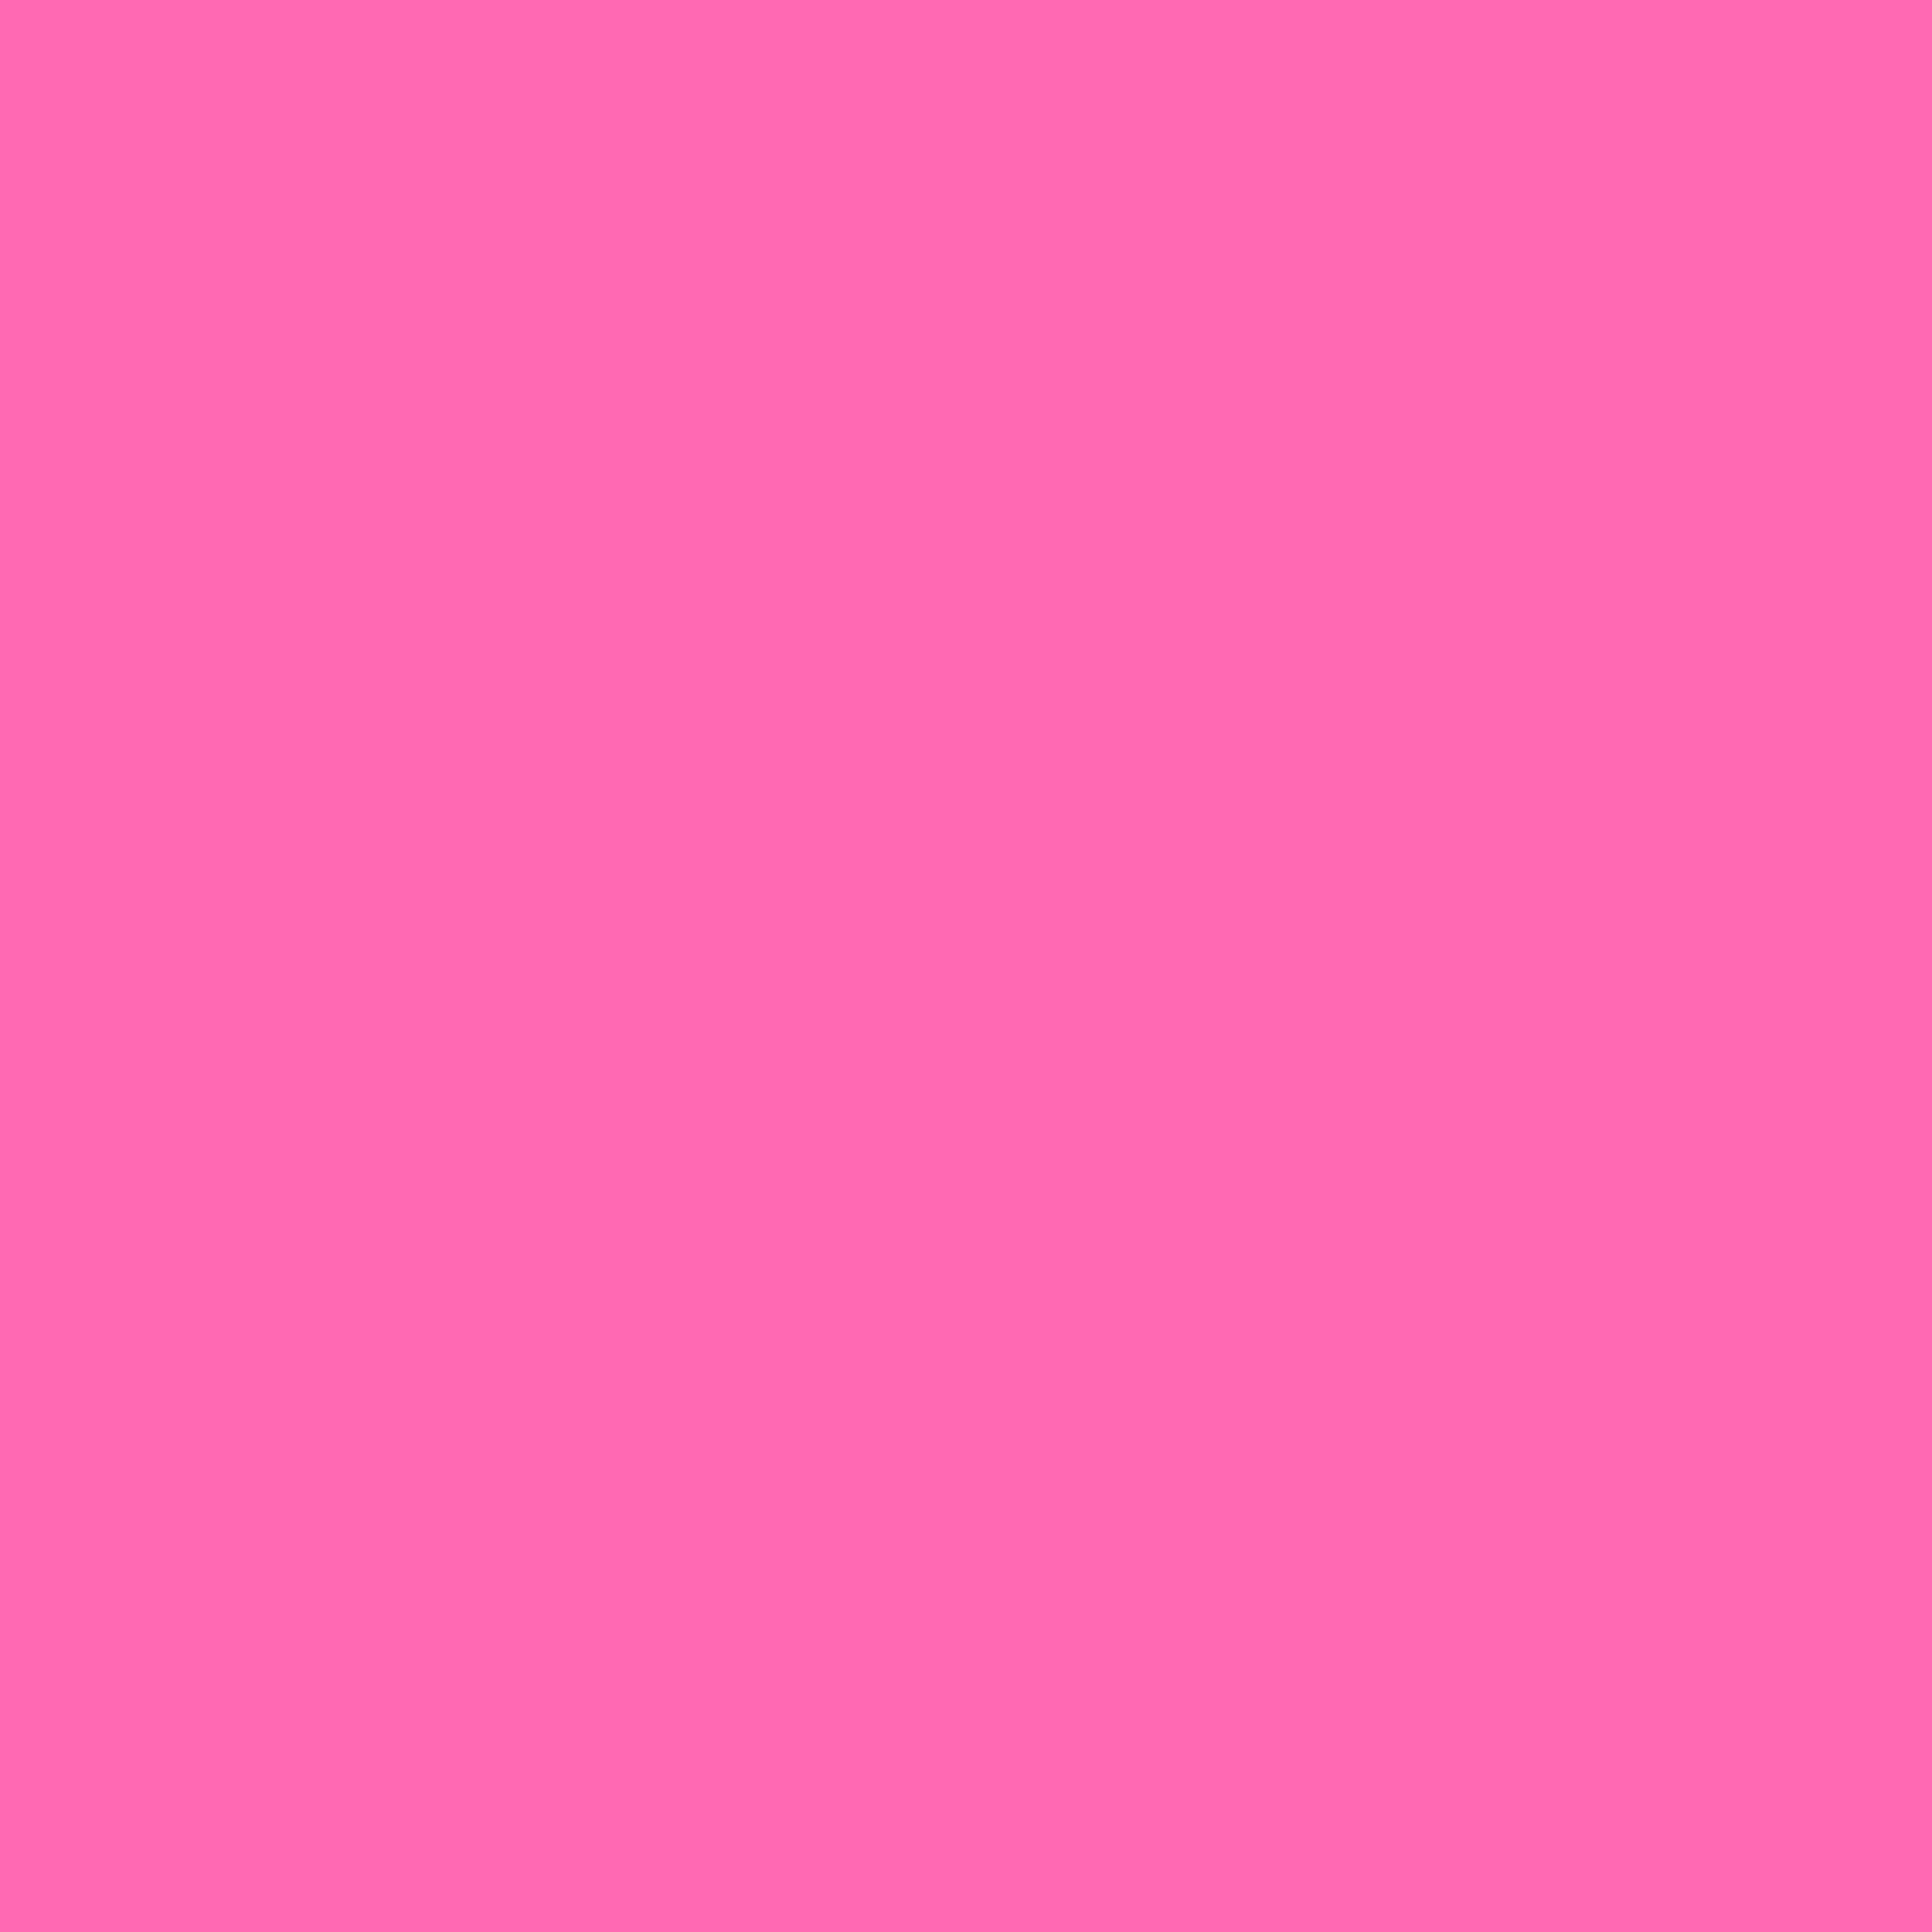 2048x2048 Hot Pink Solid Color Background